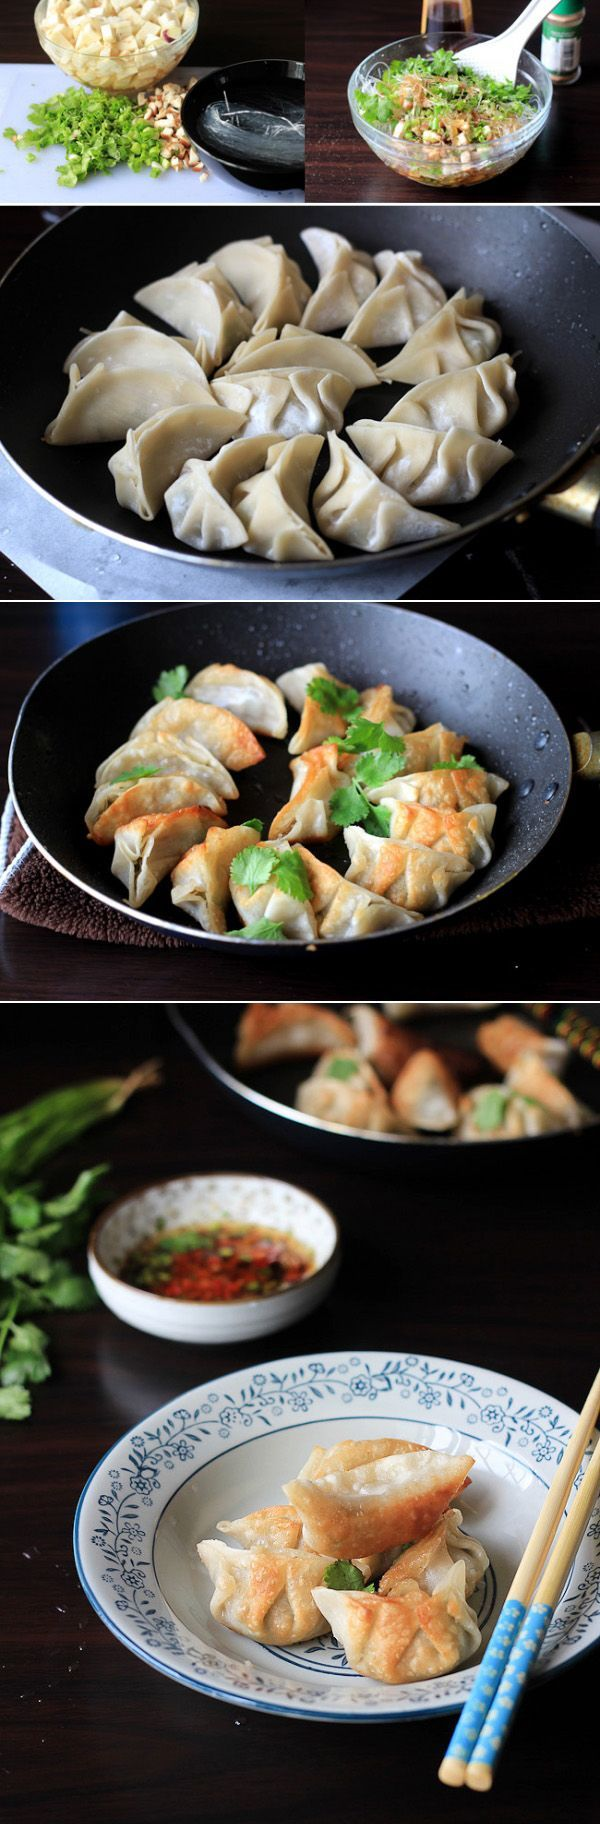 Vegan pot stickers with fried eggplants, mung bean noodles and mushrooms.